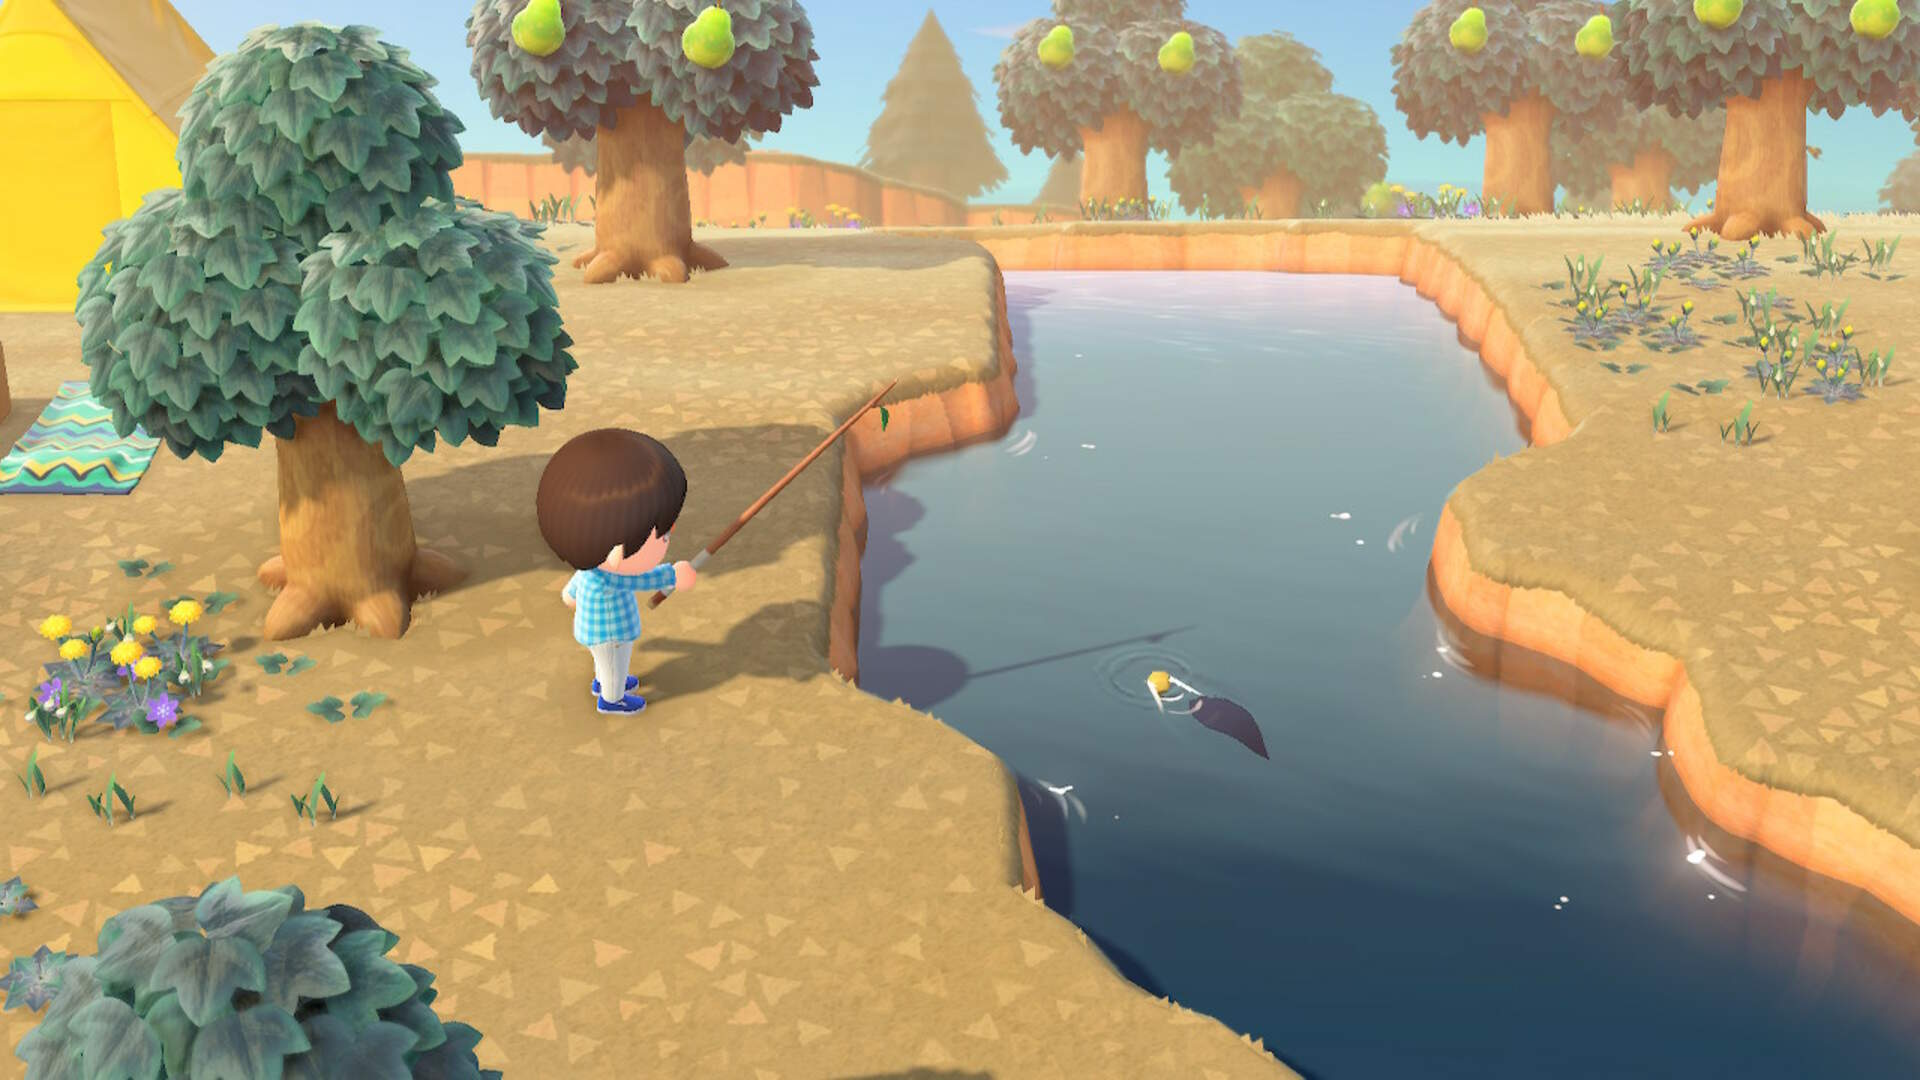 Animal Crossing New Horizons: How to Get a Fishing Rod and Catch Fish